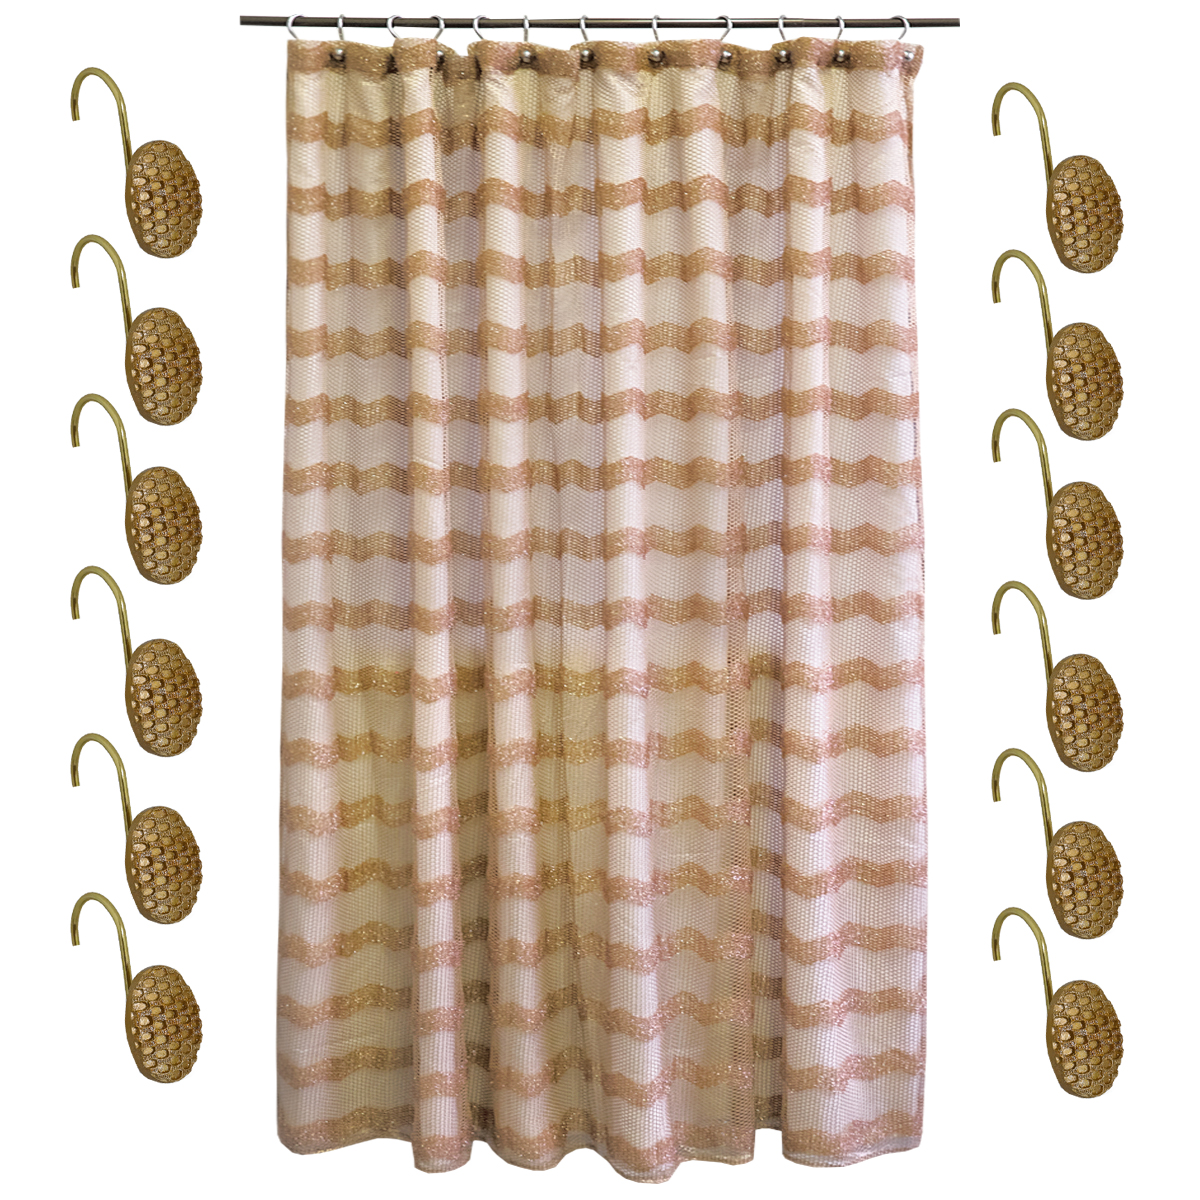 Details About Shower Curtain And Hooks Set Bronze Popular Bath Chateau Bathroom Collection